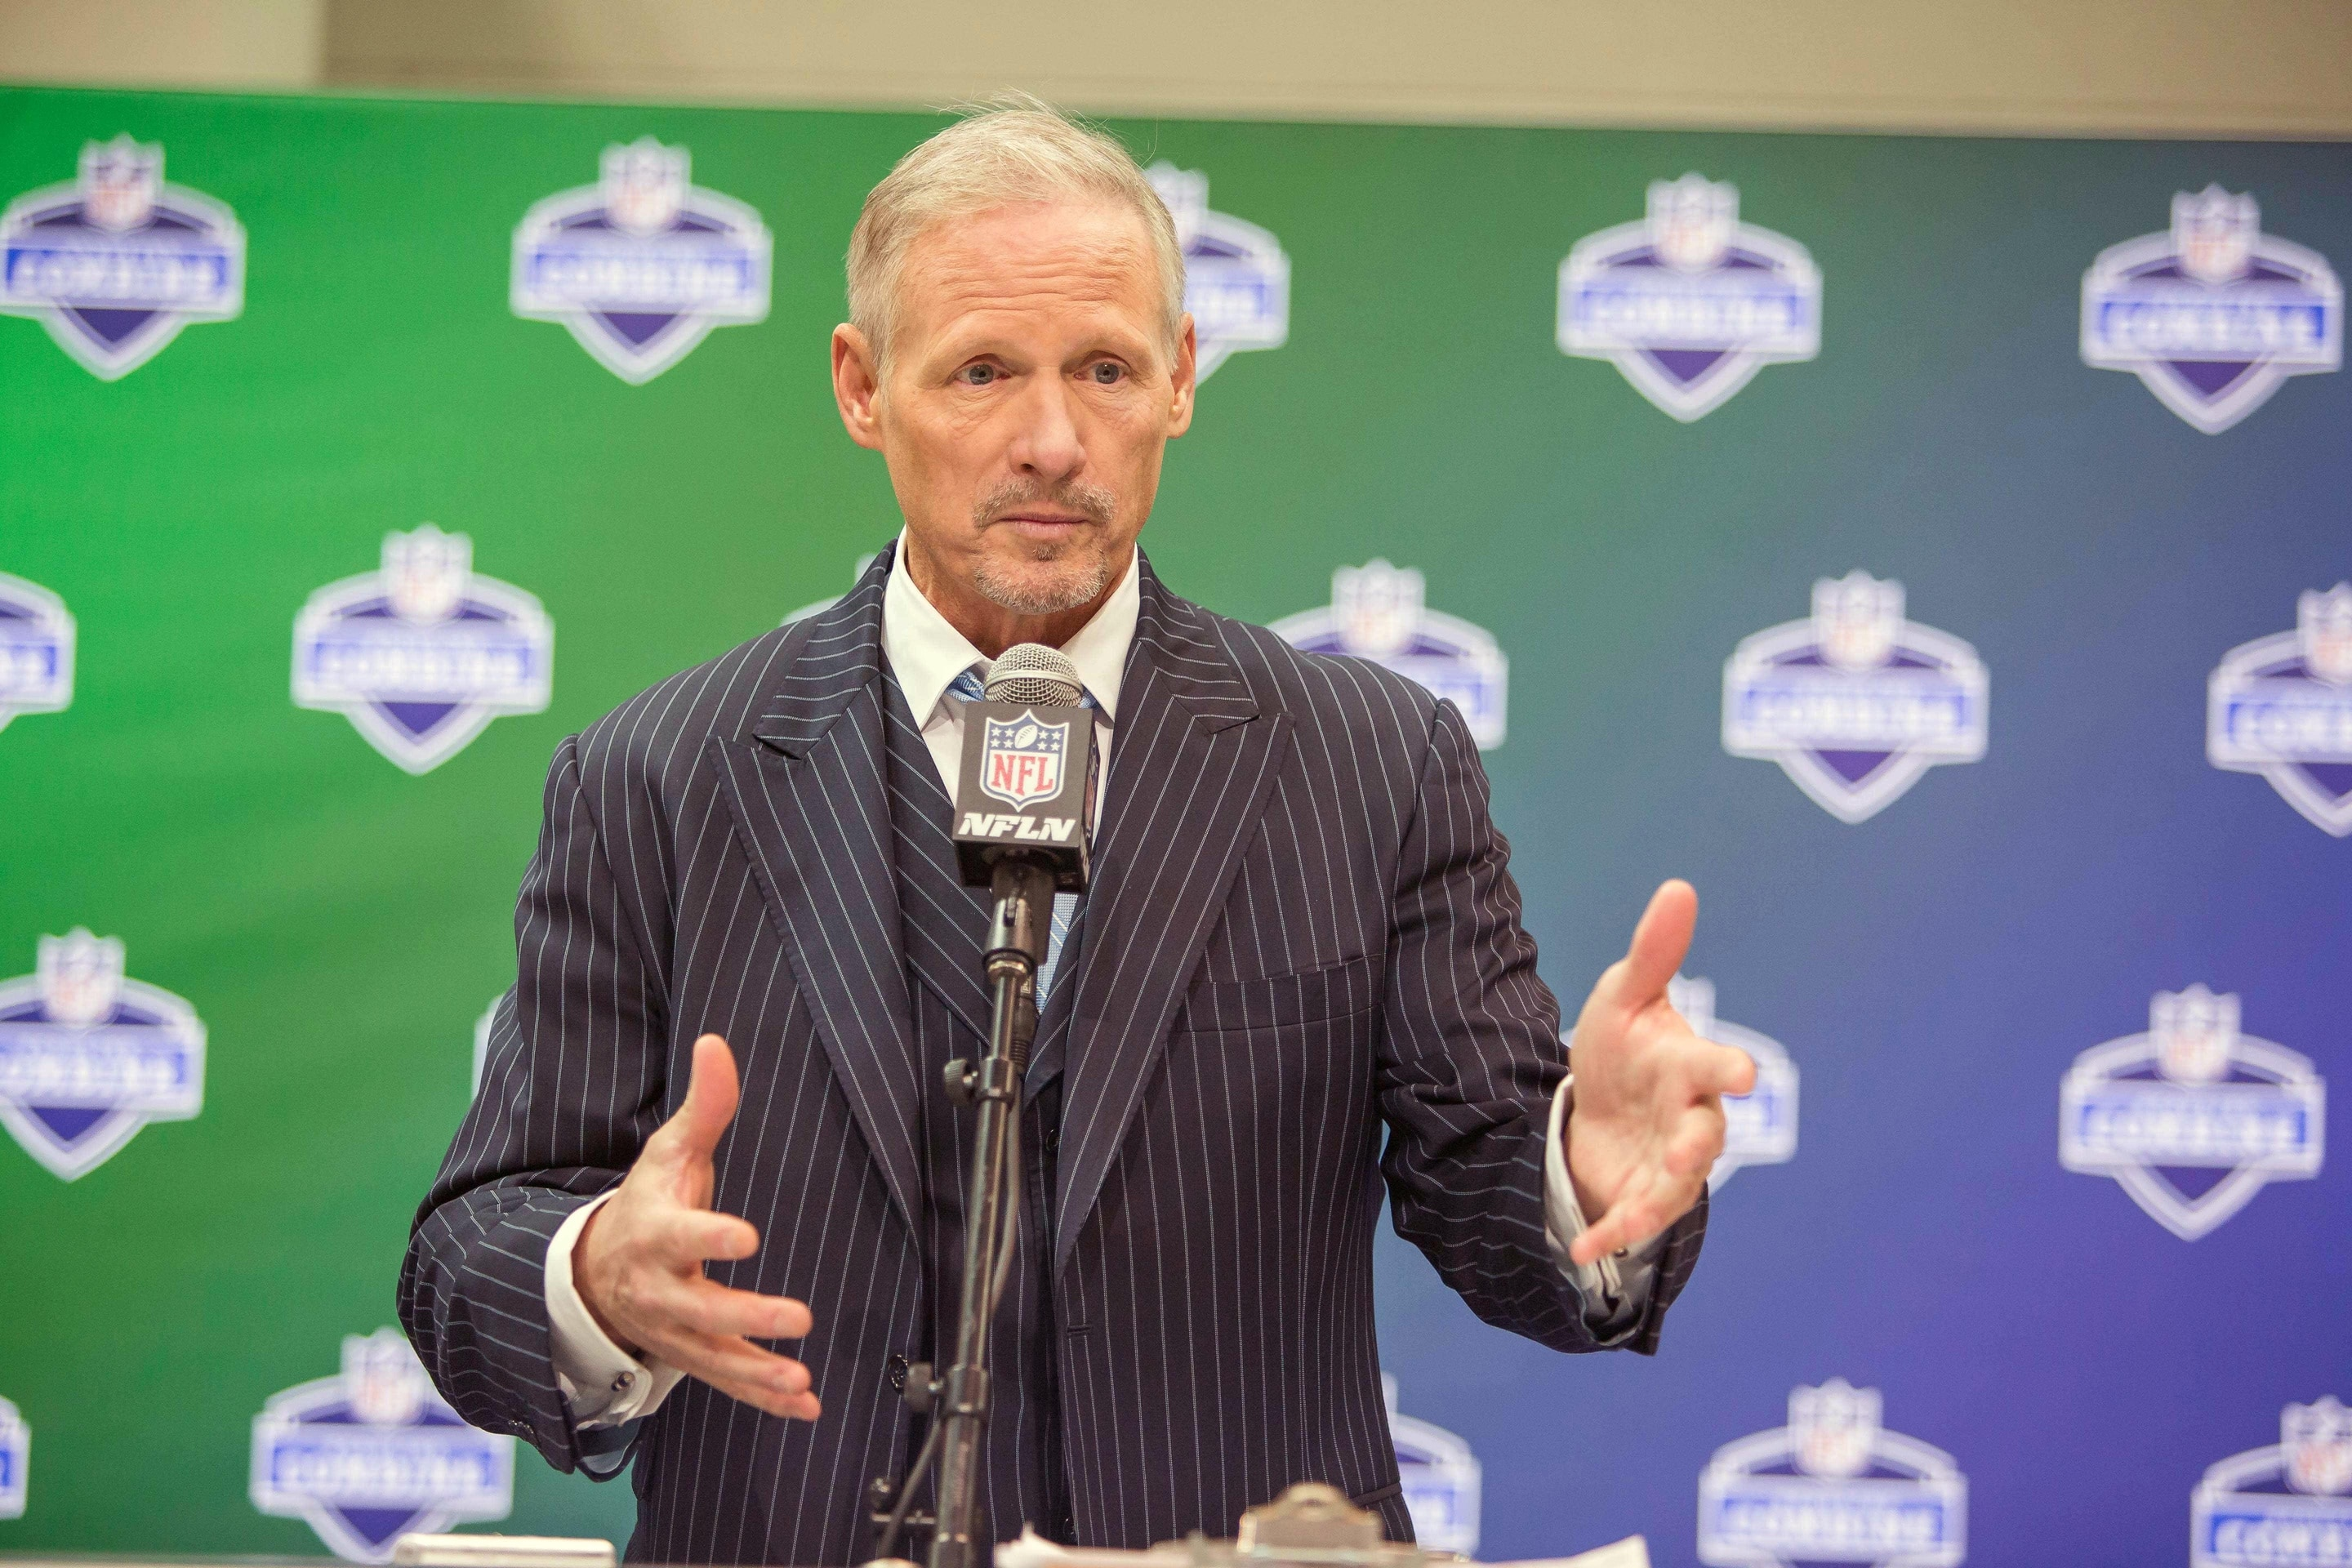 Mar 4, 2017; Indianapolis, IN, USA; NFL Media draft expert Mike Mayock speaks to the media during the 2017 combine at Indiana Convention Center. Mandatory Credit: Trevor Ruszkowski-USA TODAY Sports